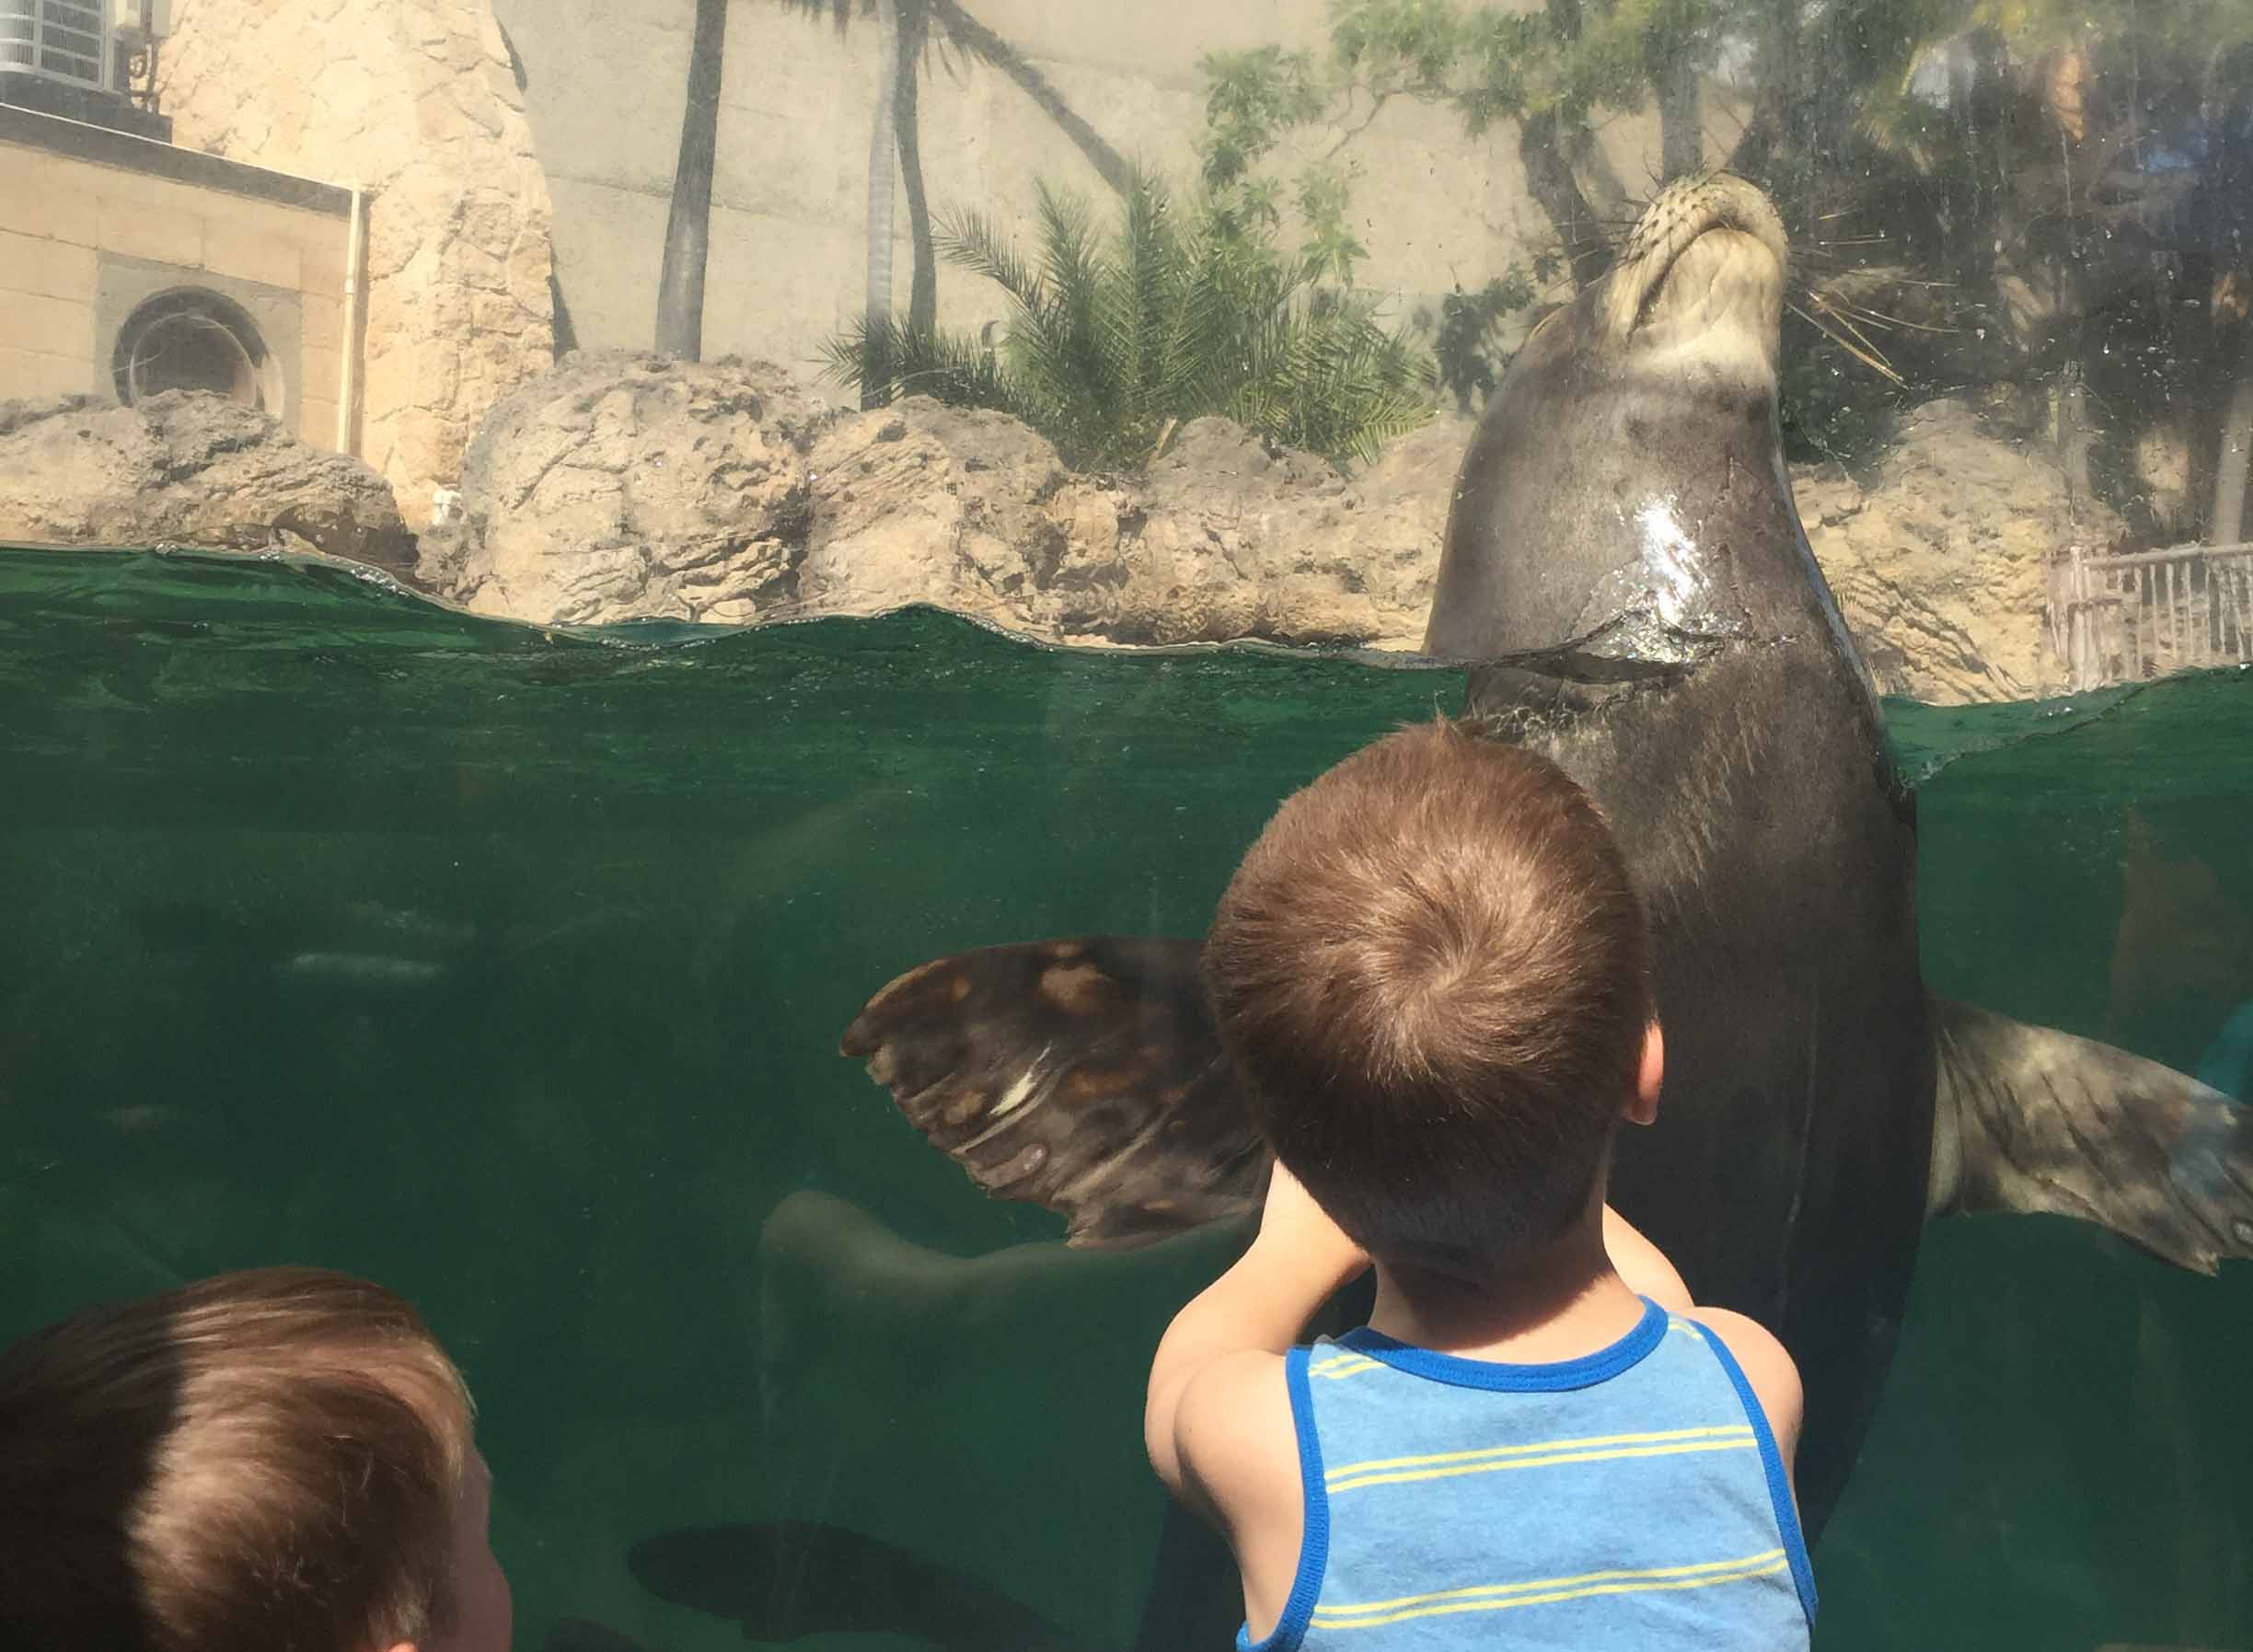 Learning about the rescued wildlife that the aquarium cares for